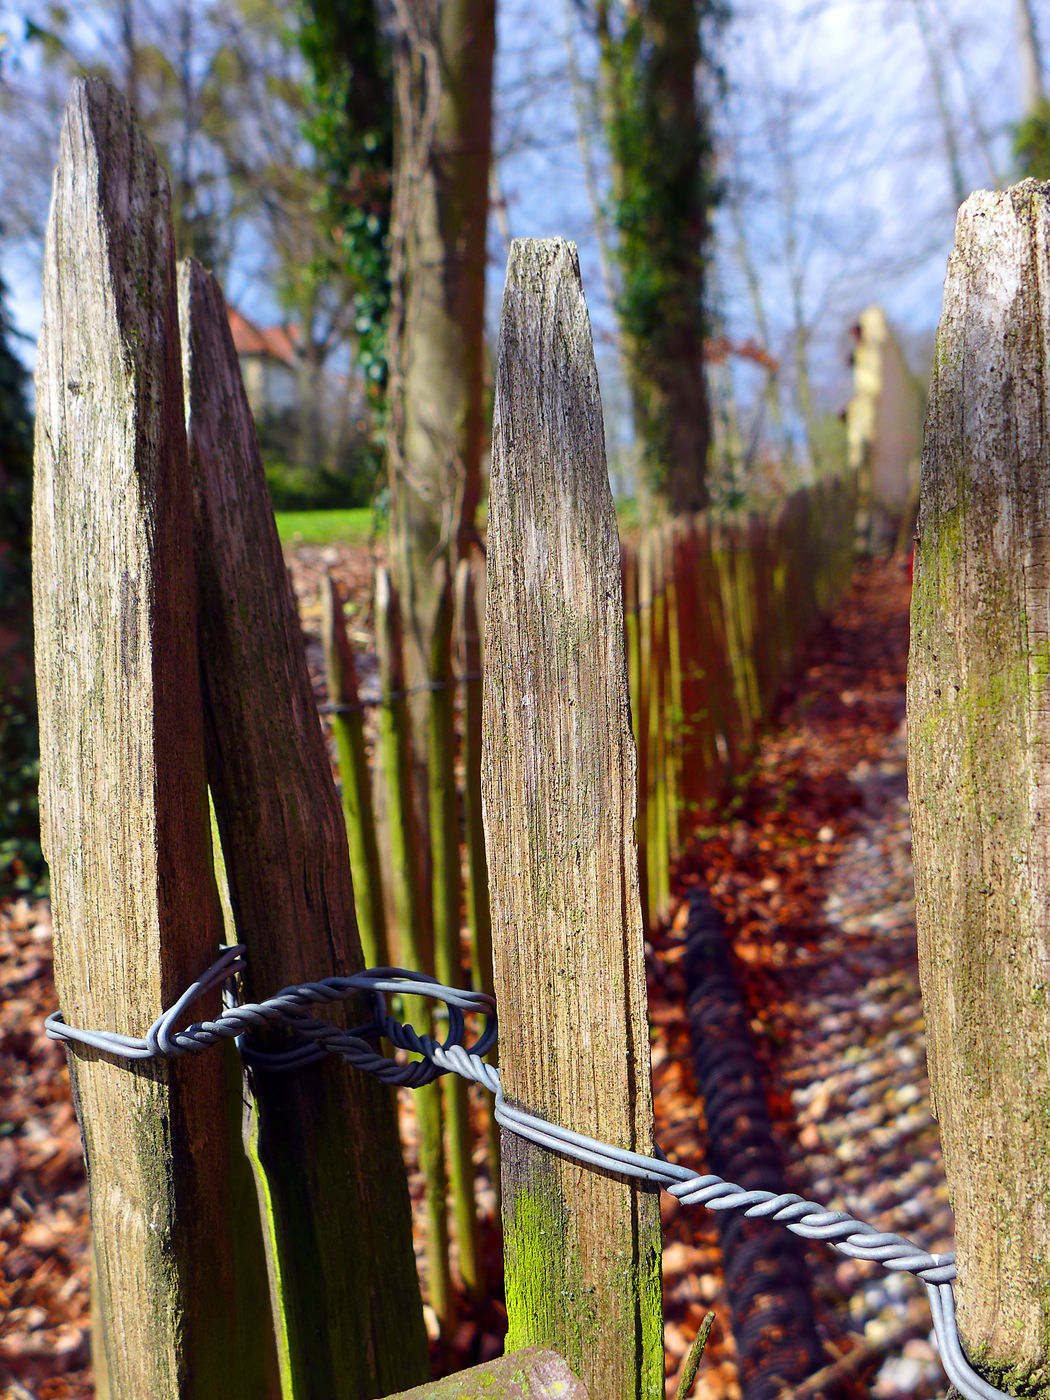 Wooden fence Fence Fencepost Fencing Post Lattenzaun Nature Tranquil Scene Tranquility Tree Trunk Wood - Material Wooden Fence Wooden Post Zaun